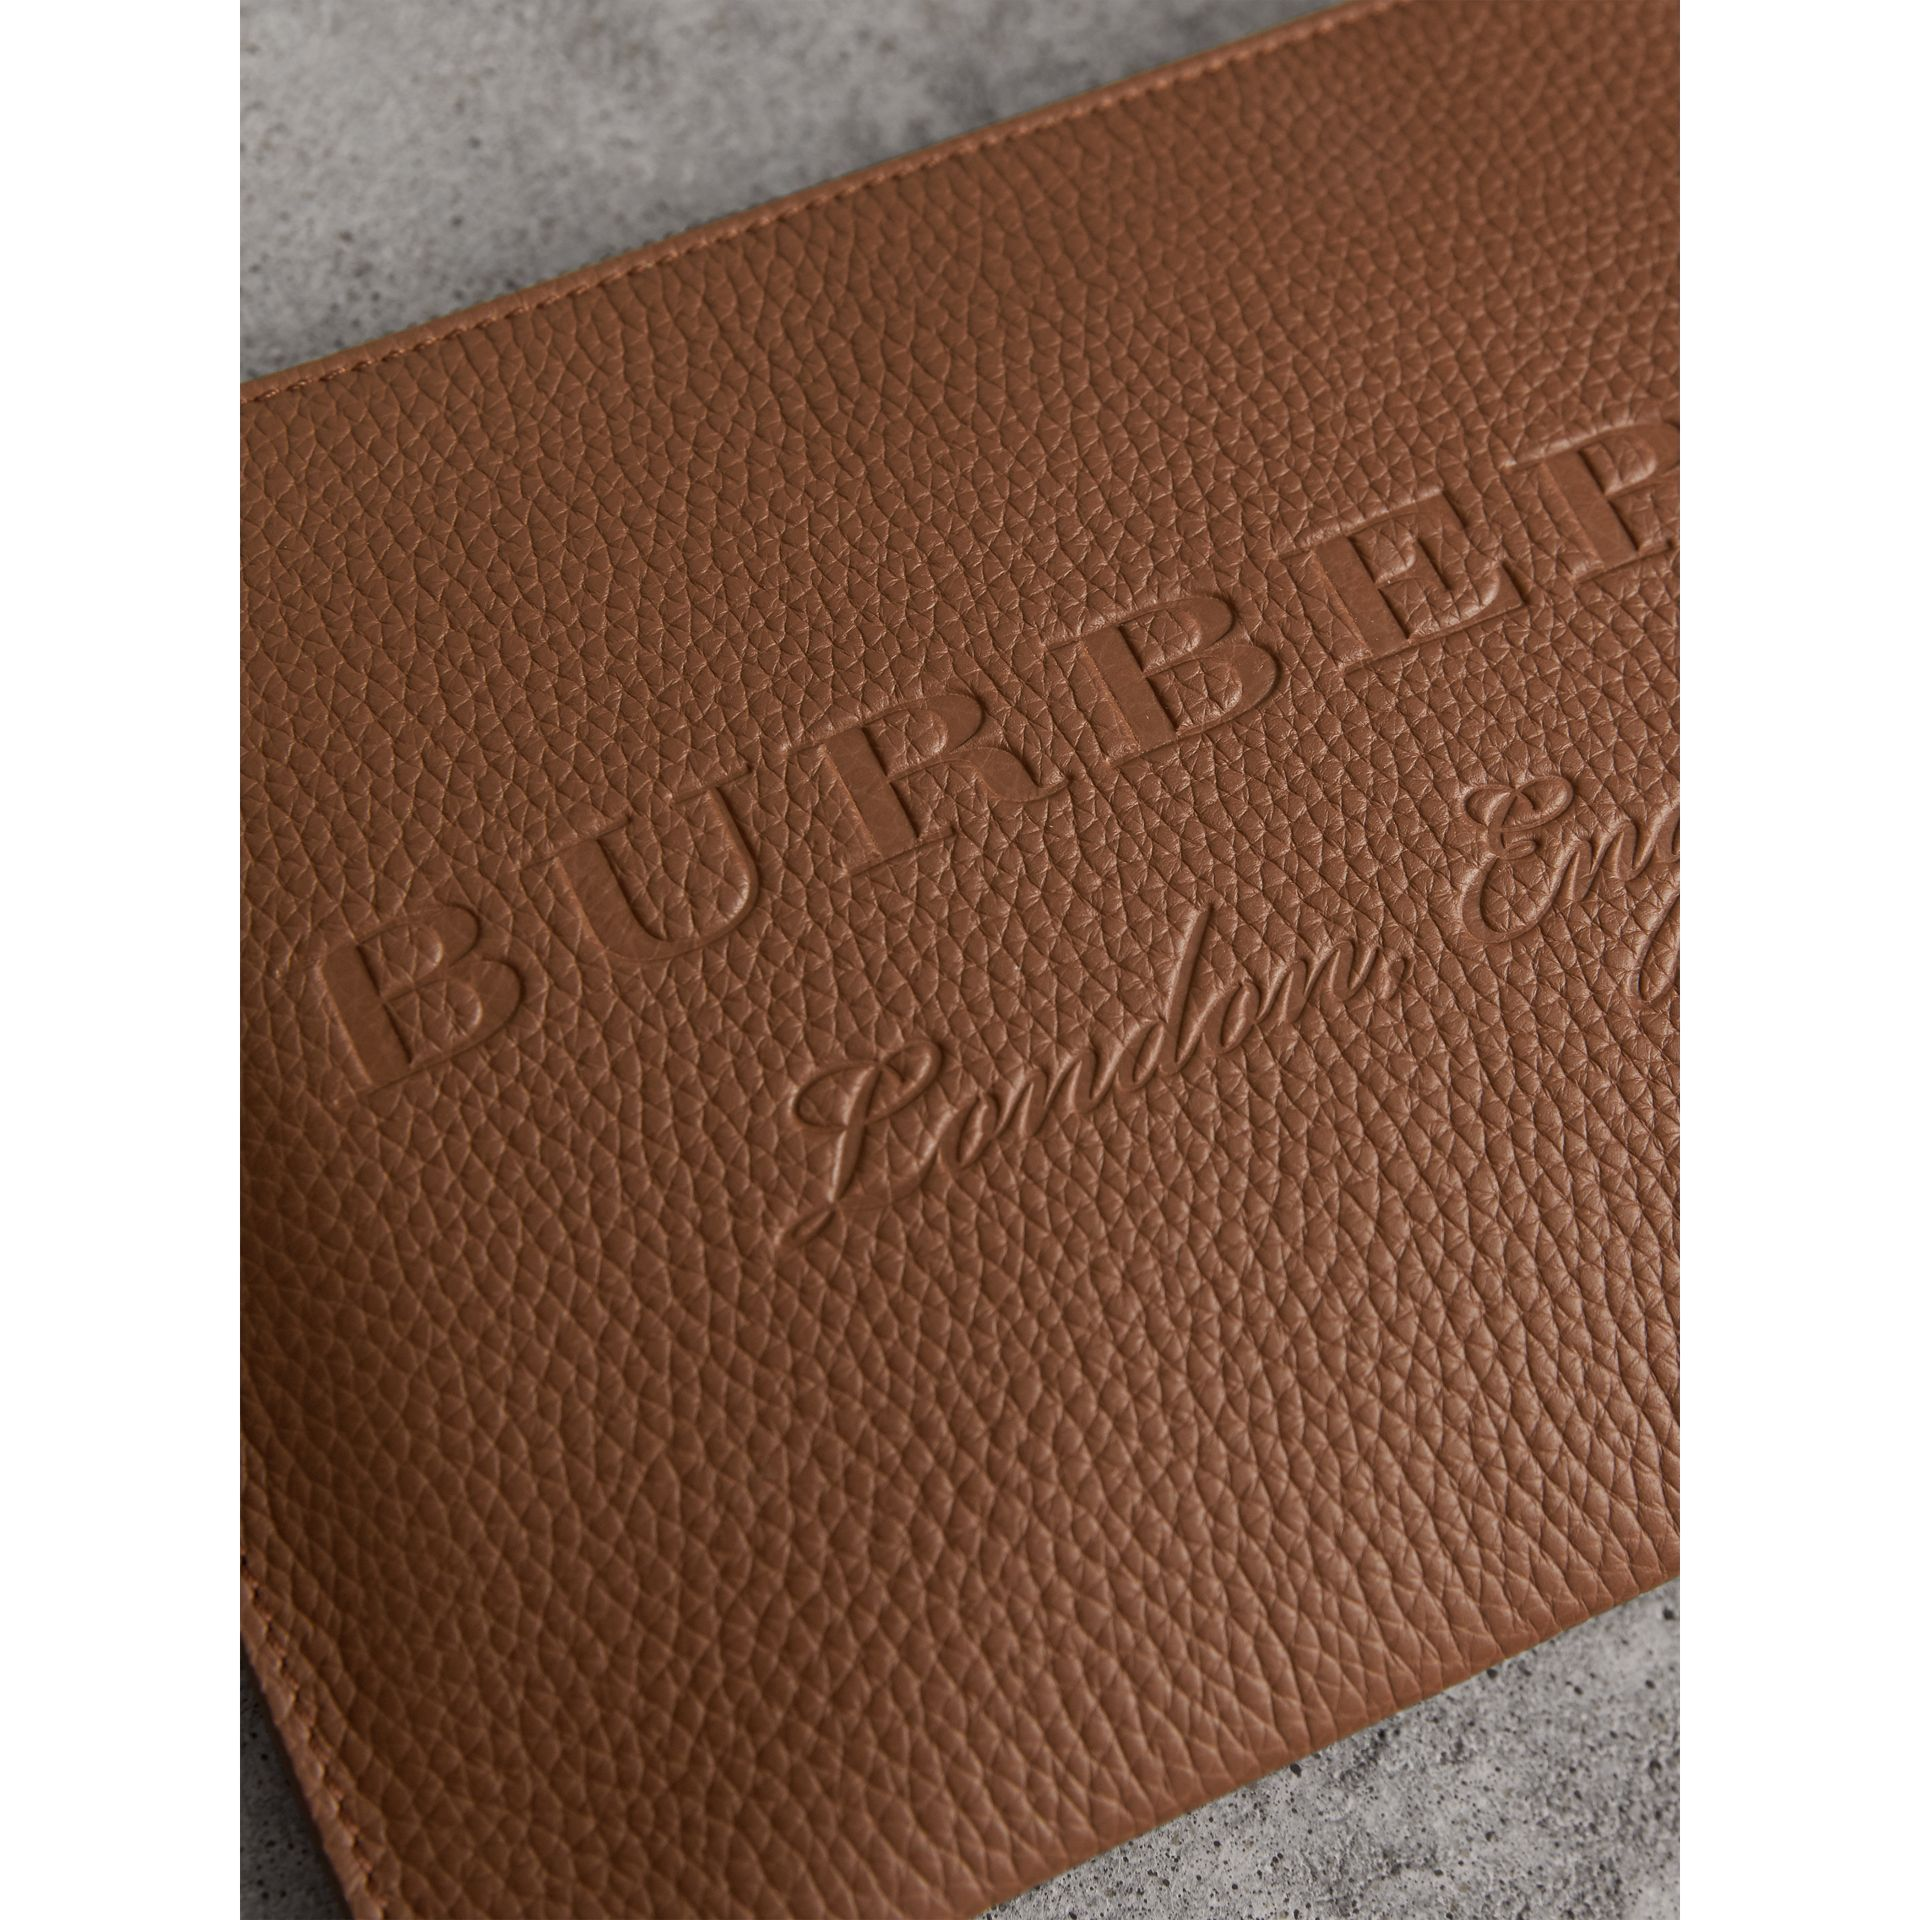 Embossed Leather Clutch Bag in Chestnut Brown - Women | Burberry Canada - gallery image 1